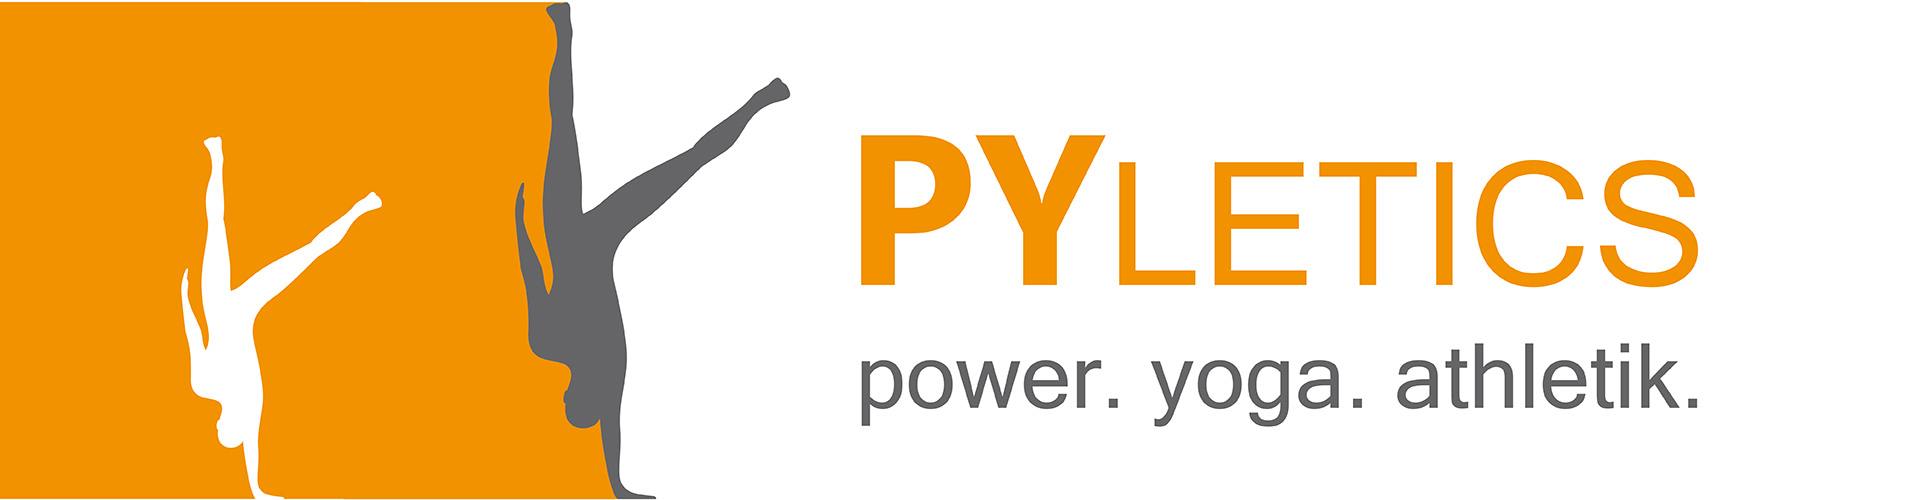 PYletics - Power Yogaletics